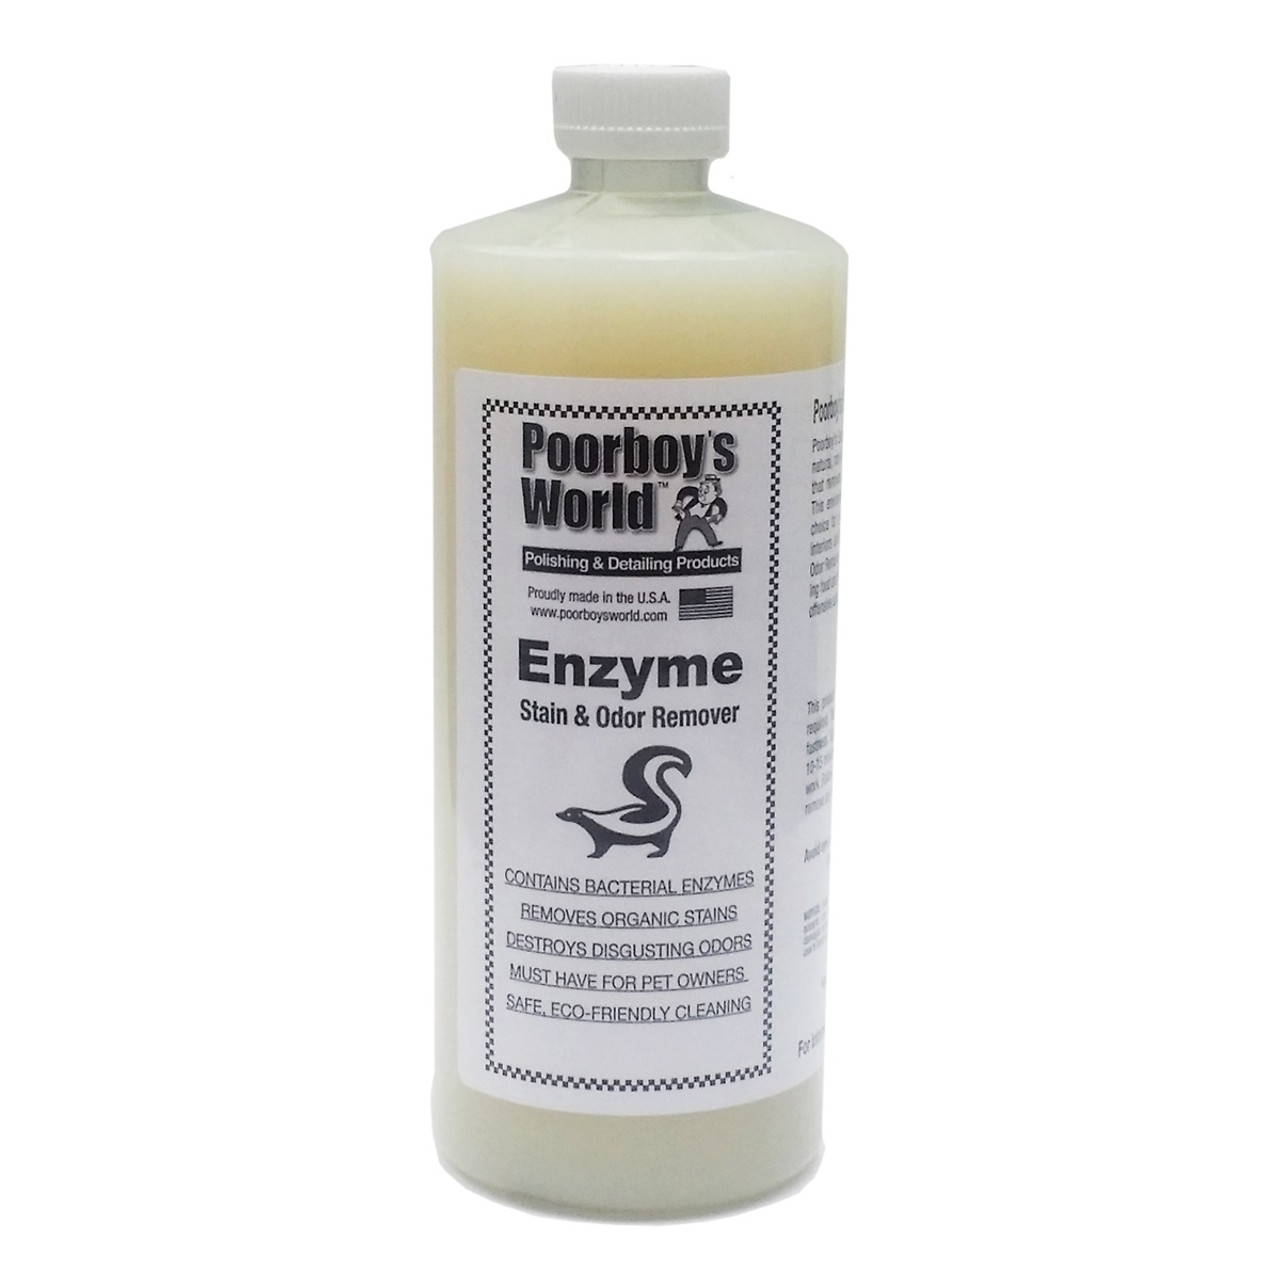 Poorboy's World Enzyme Stain & Odor Remover 32oz Refill